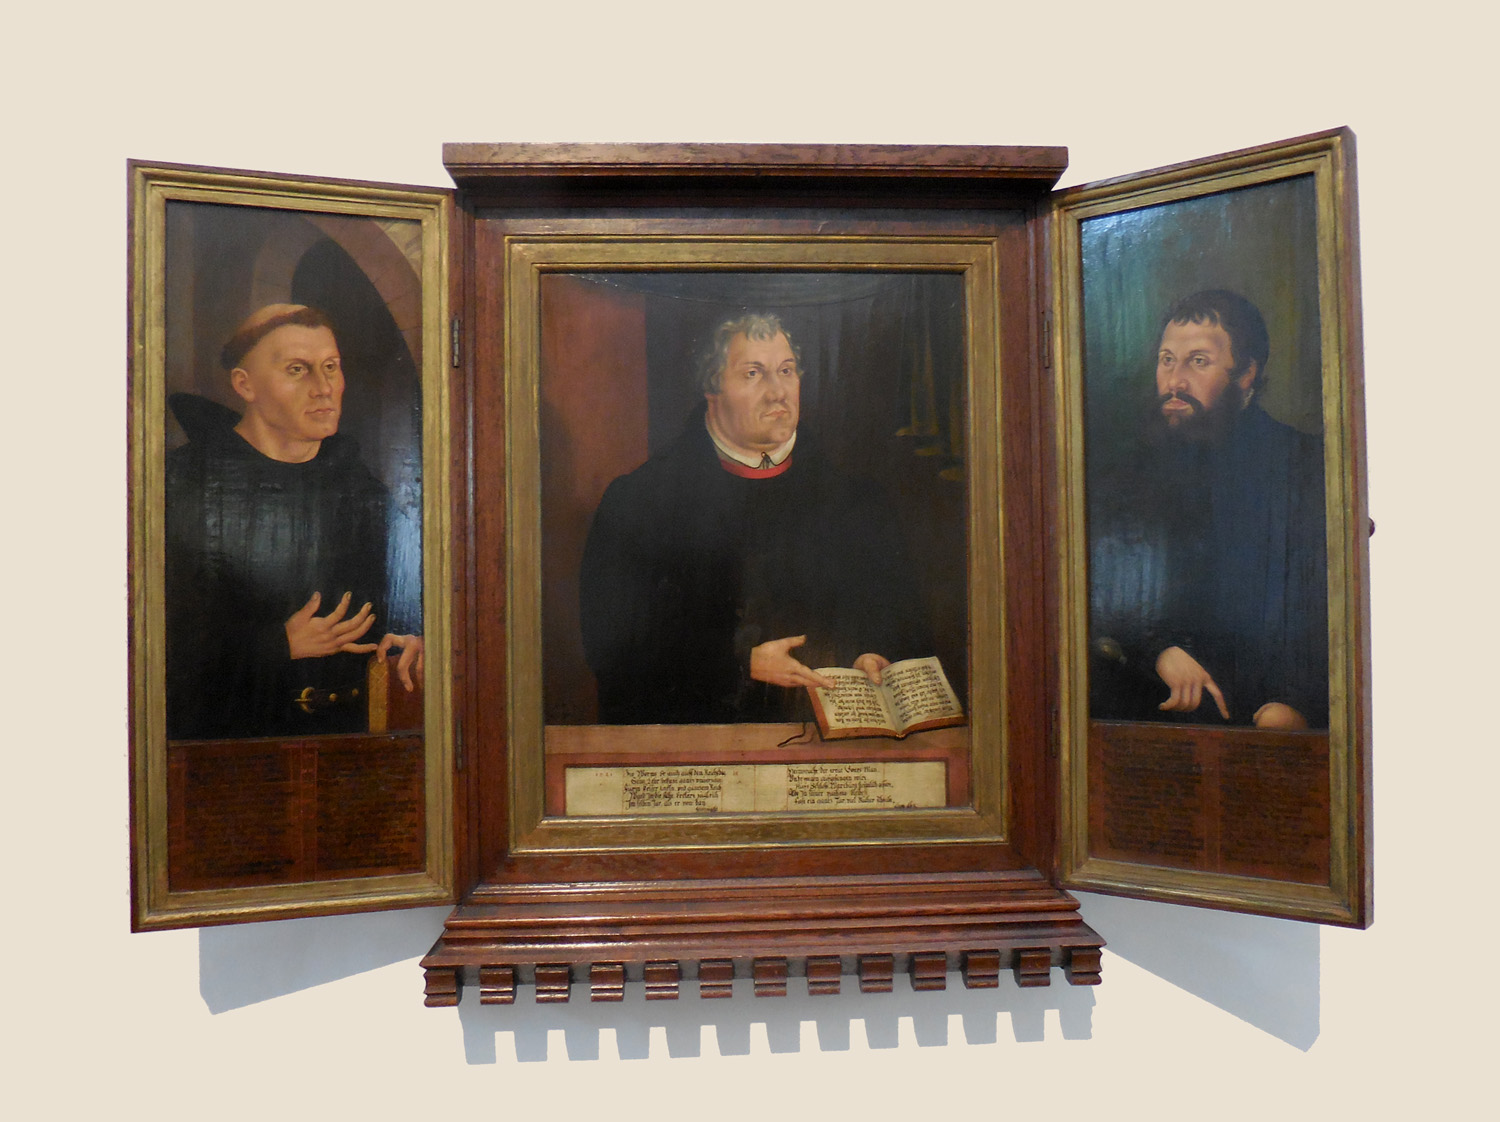 Martin Luther Monk, Knight, Reformer